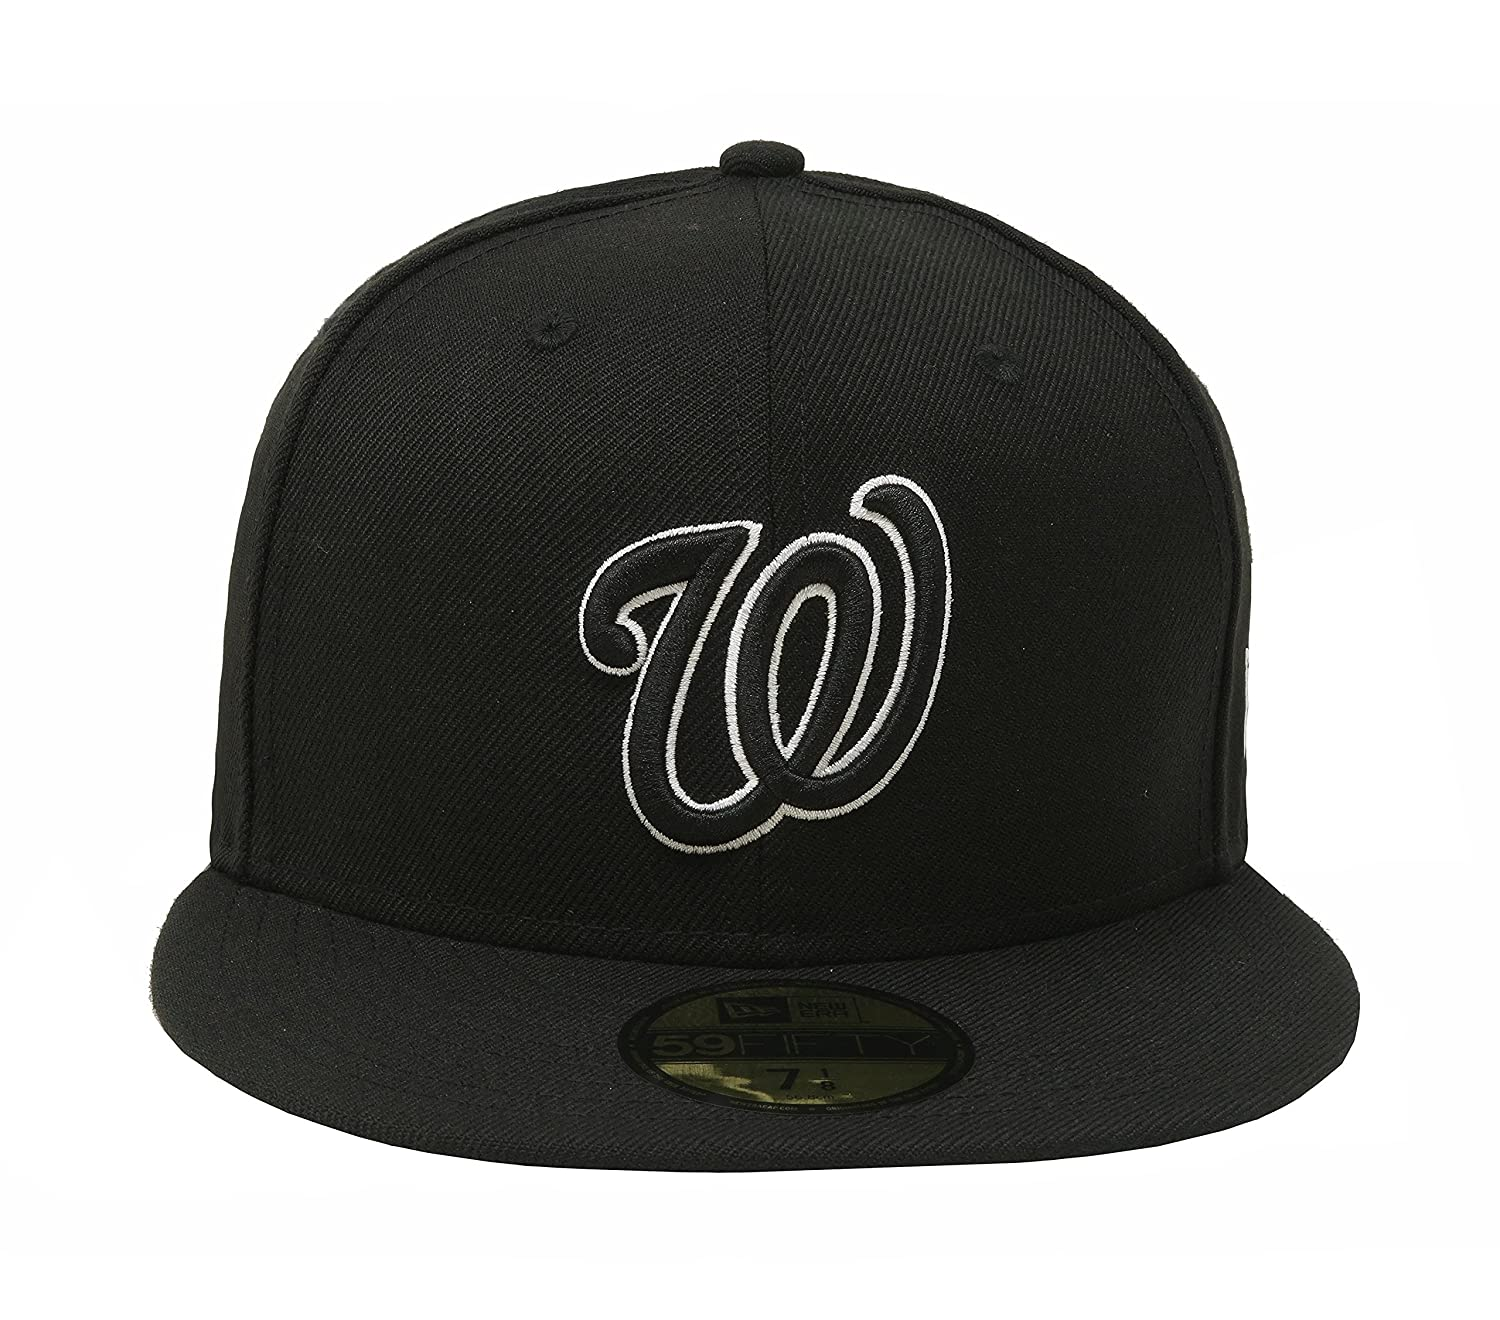 huge discount ad682 8c6f7 Amazon.com  New Era 59Fifty Men s Hat Washington Nationals Black White  Fitted Headwear Cap  Clothing